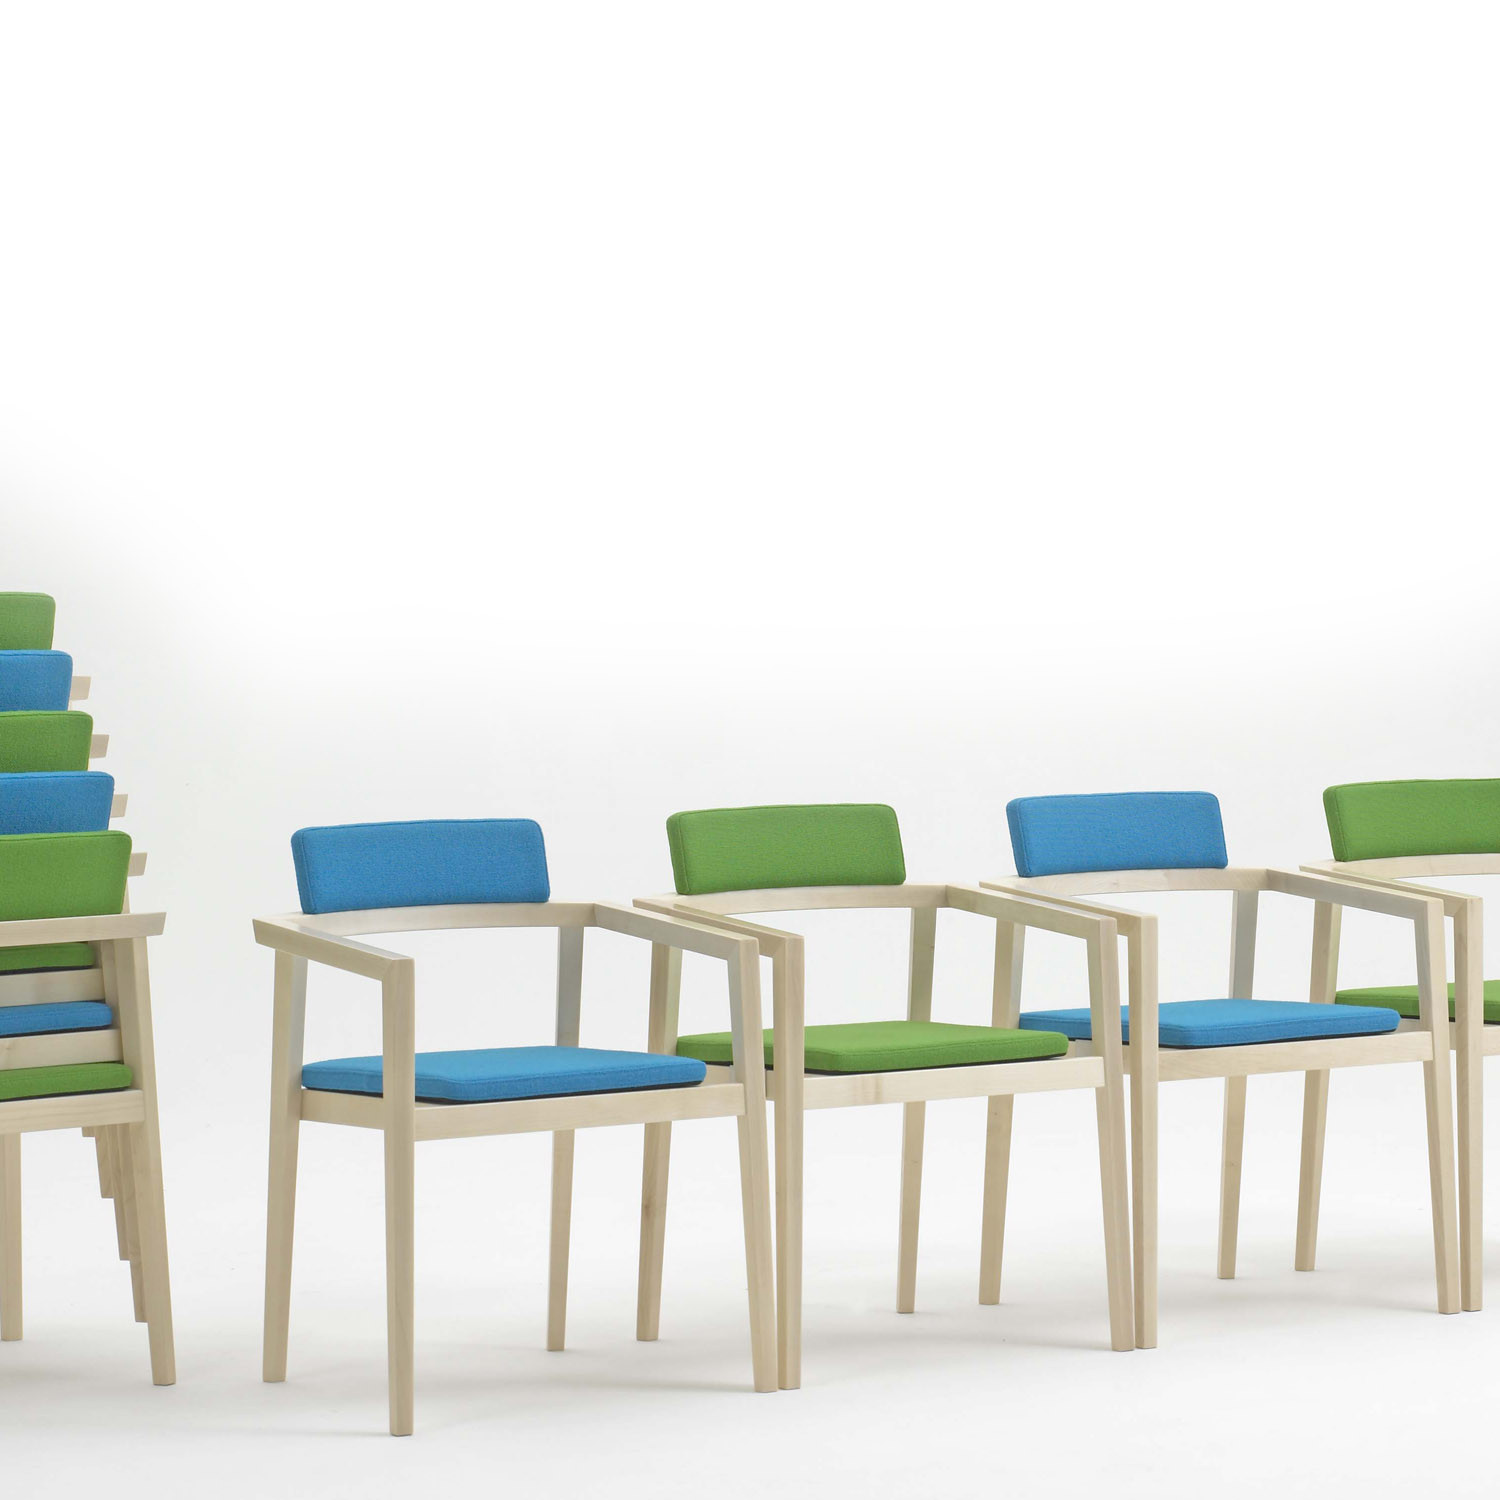 Session Armchairs